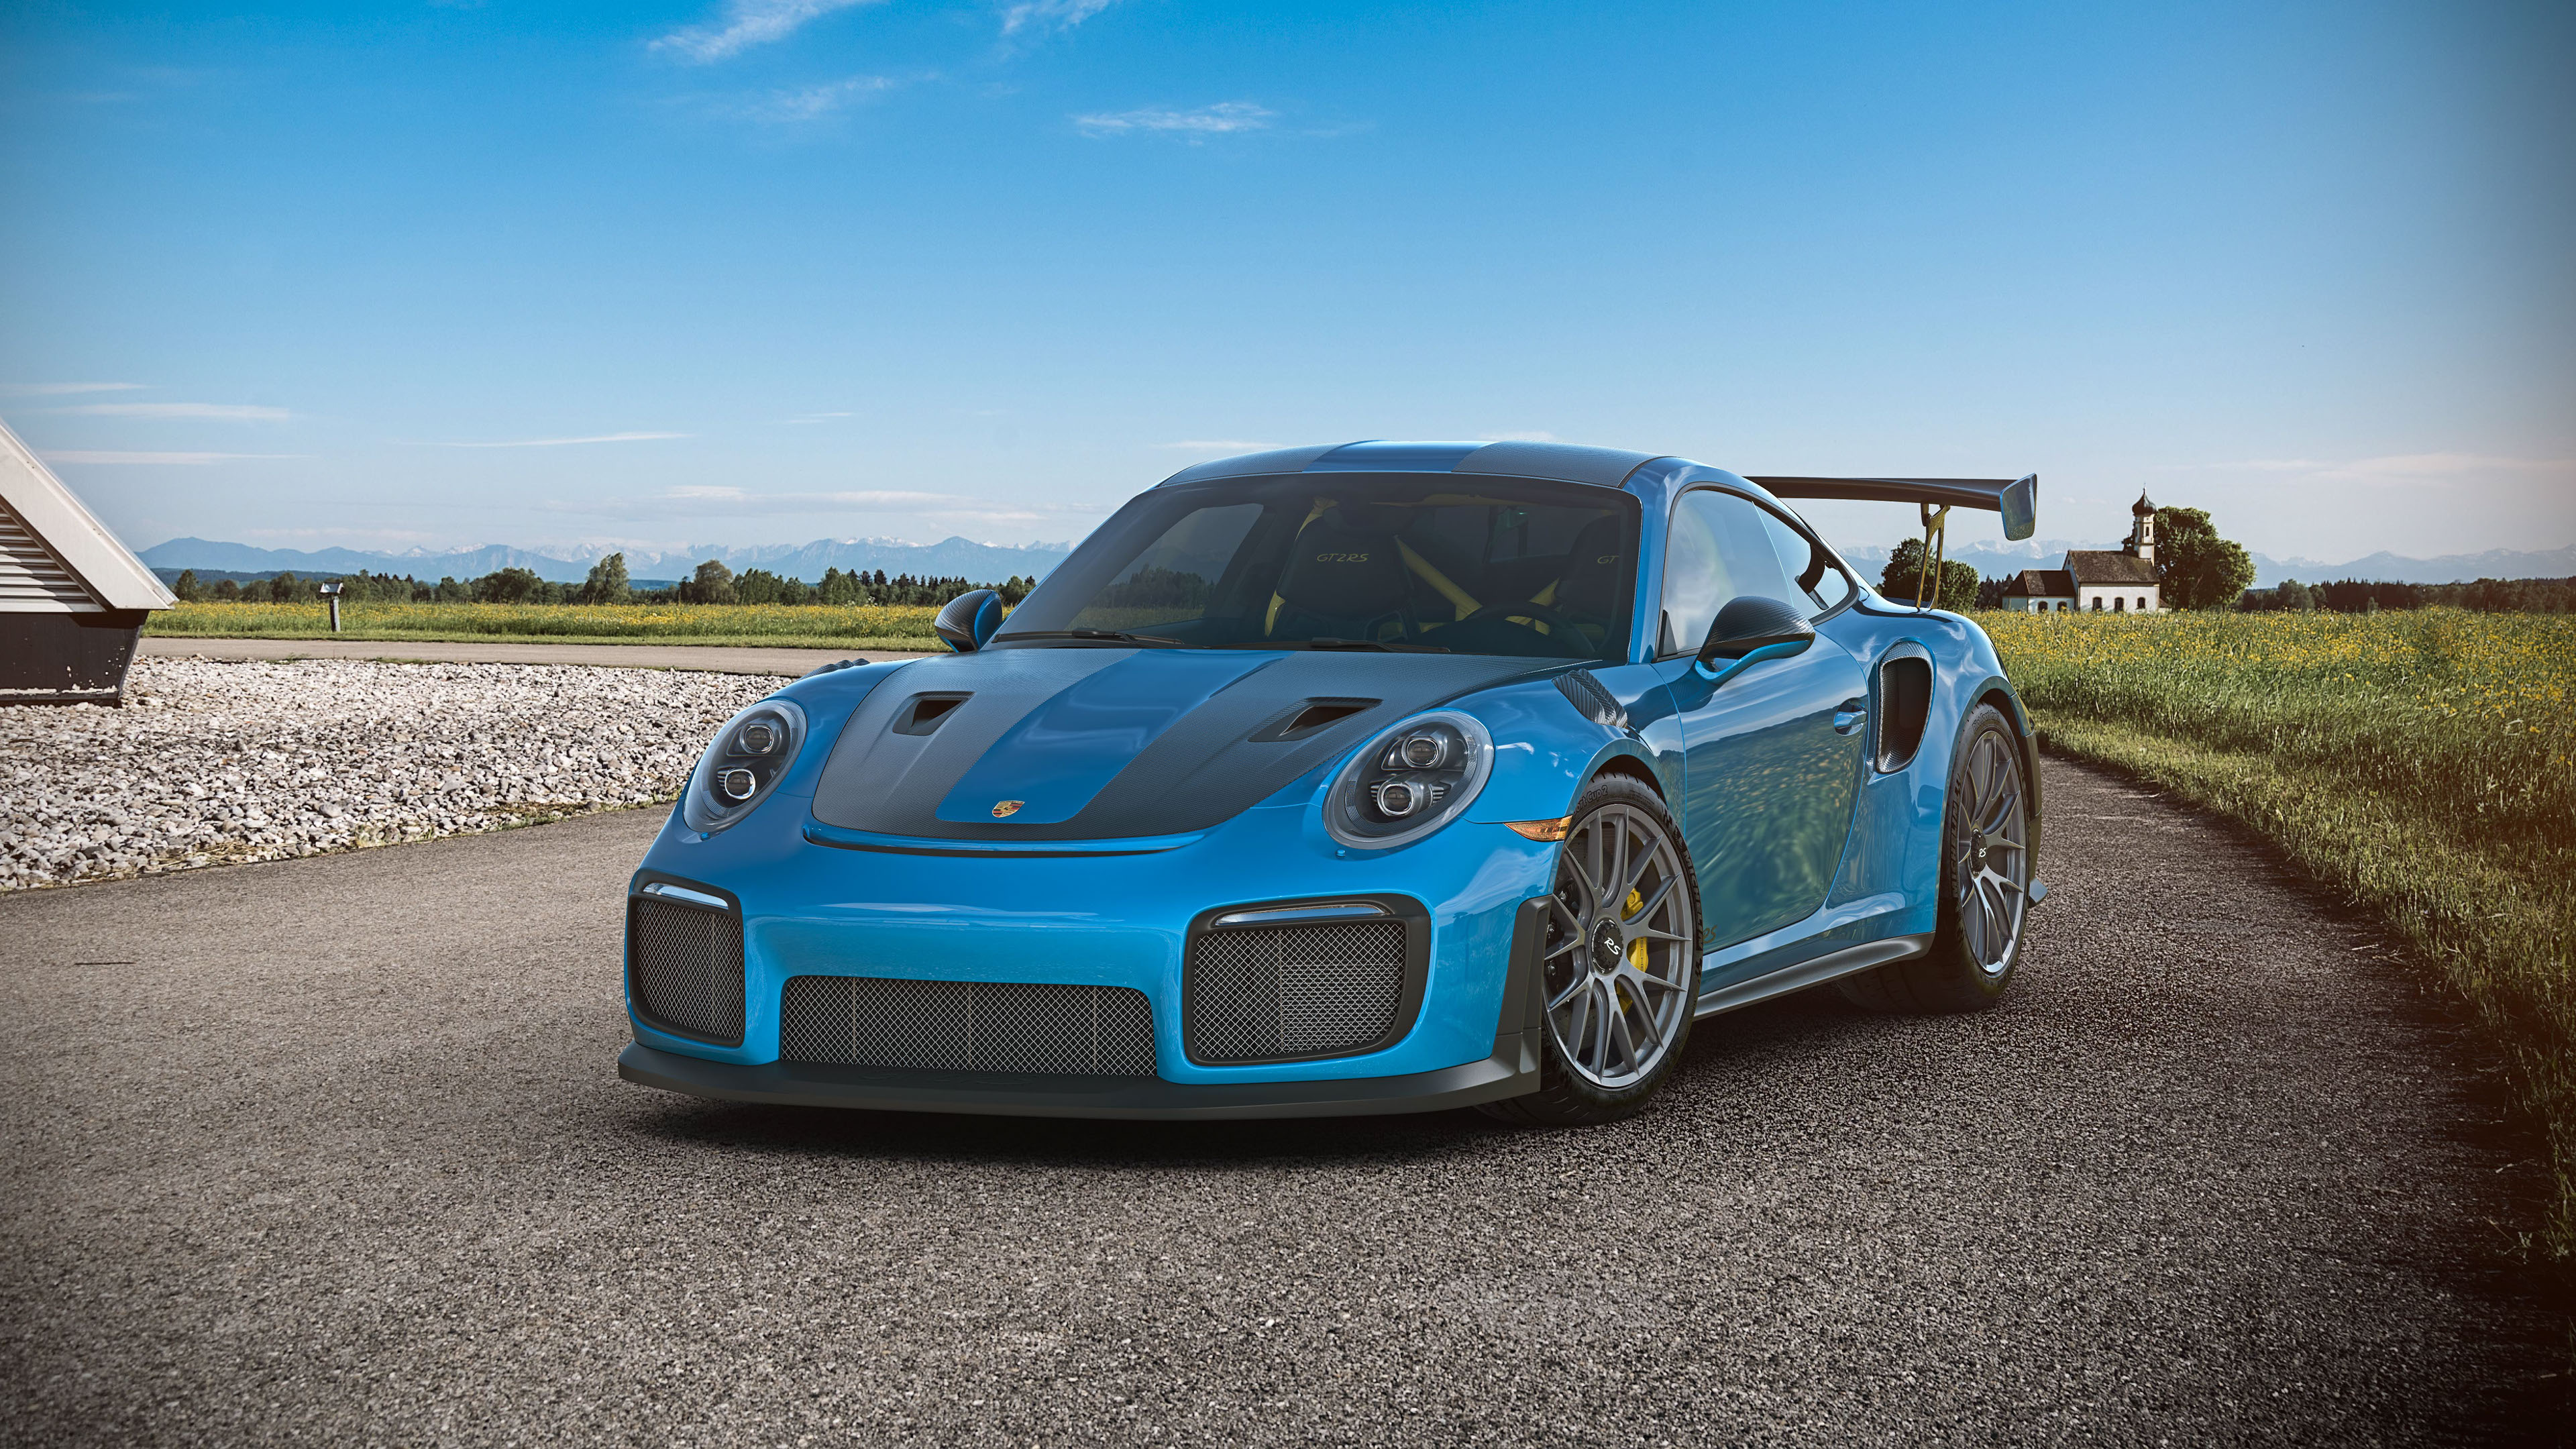 Cgi Porsche Gt2 Rs Hd Cars 4k Wallpapers Images Backgrounds